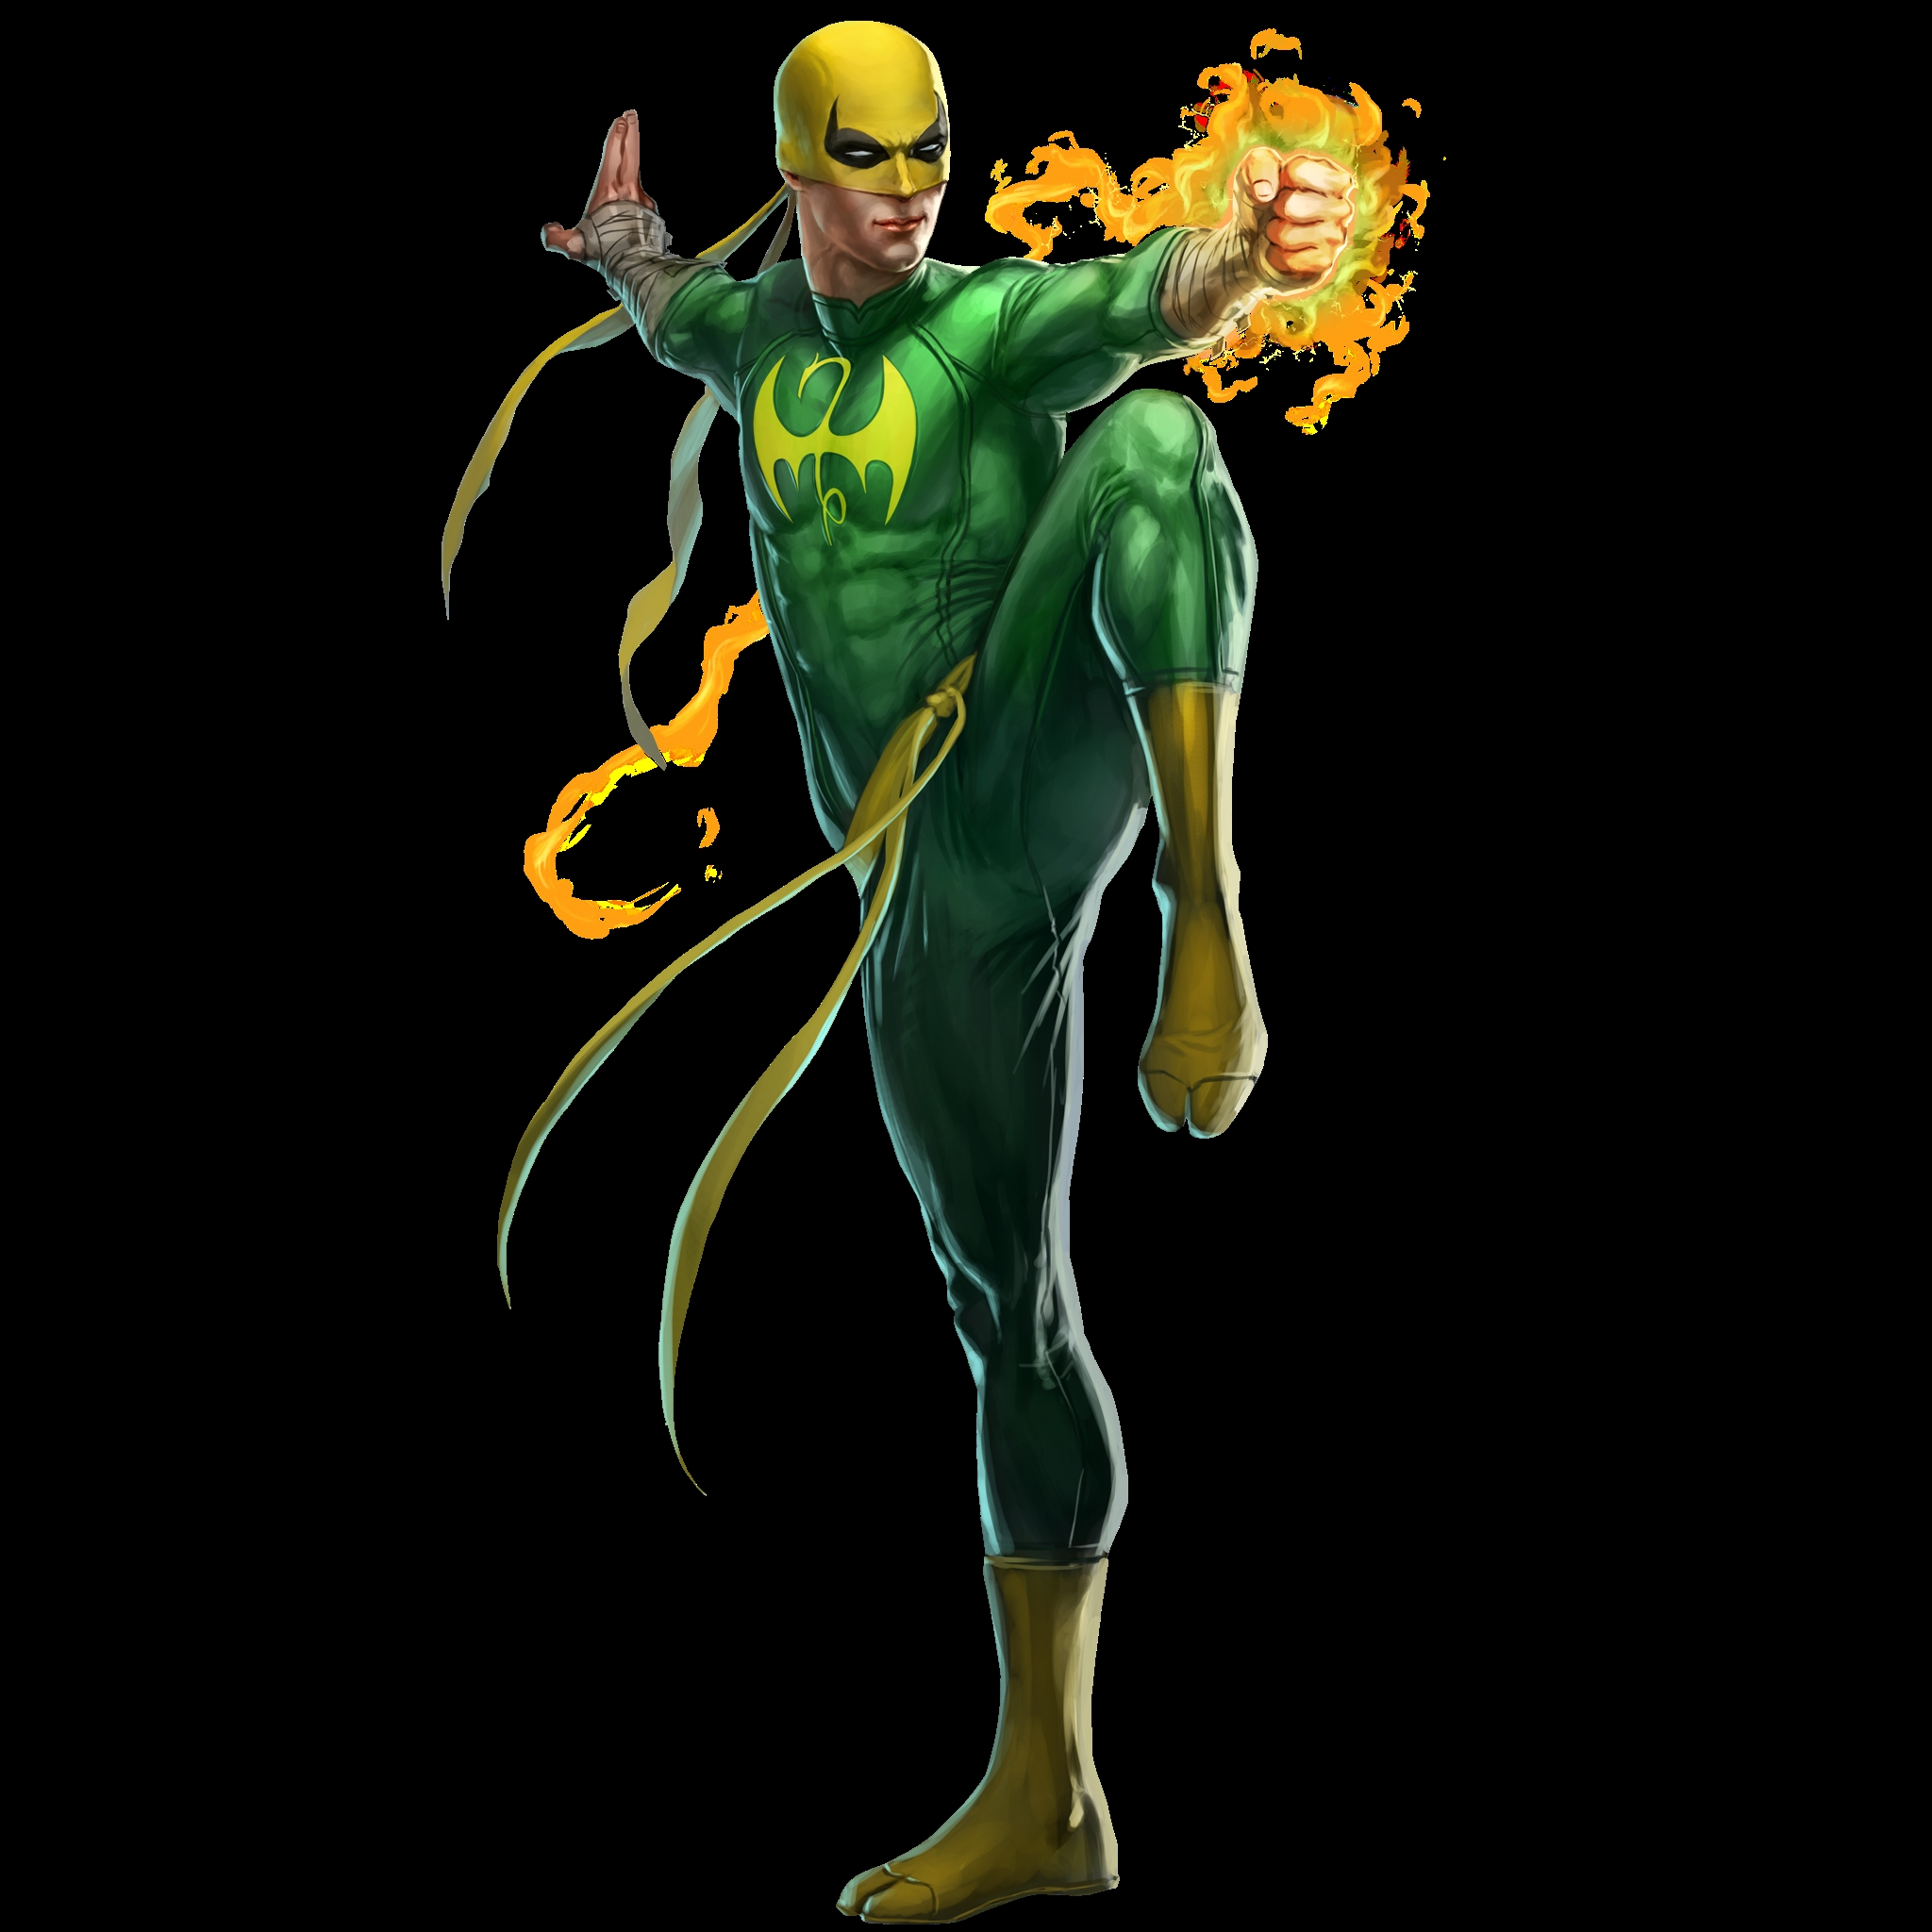 iron-fist-wallpaper-hd iron fist